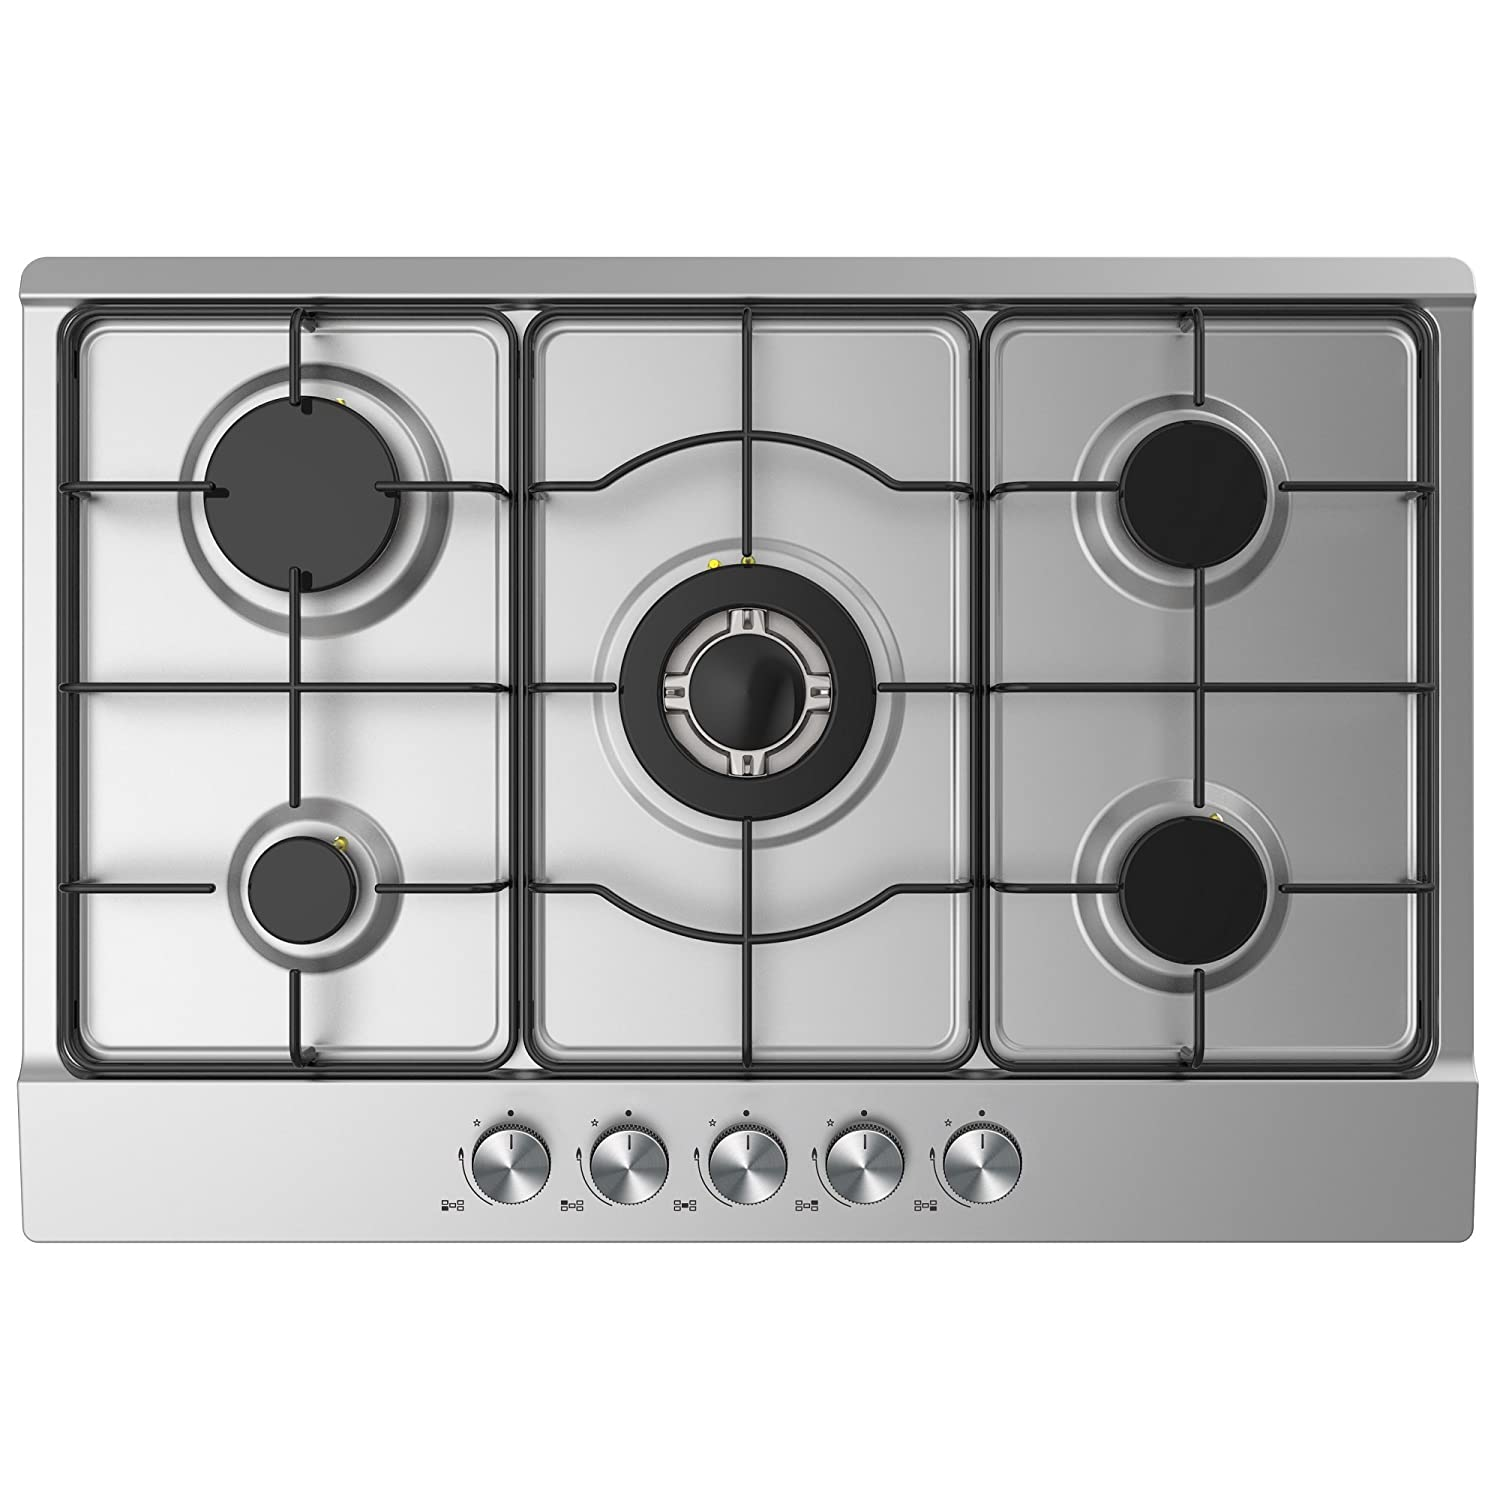 Cookology GH750SS Kitchen Hob | 75cm Built-in 5 Burner Gas Hob in Stainless Steel with Enamelled Pan Stands & LPG Jets